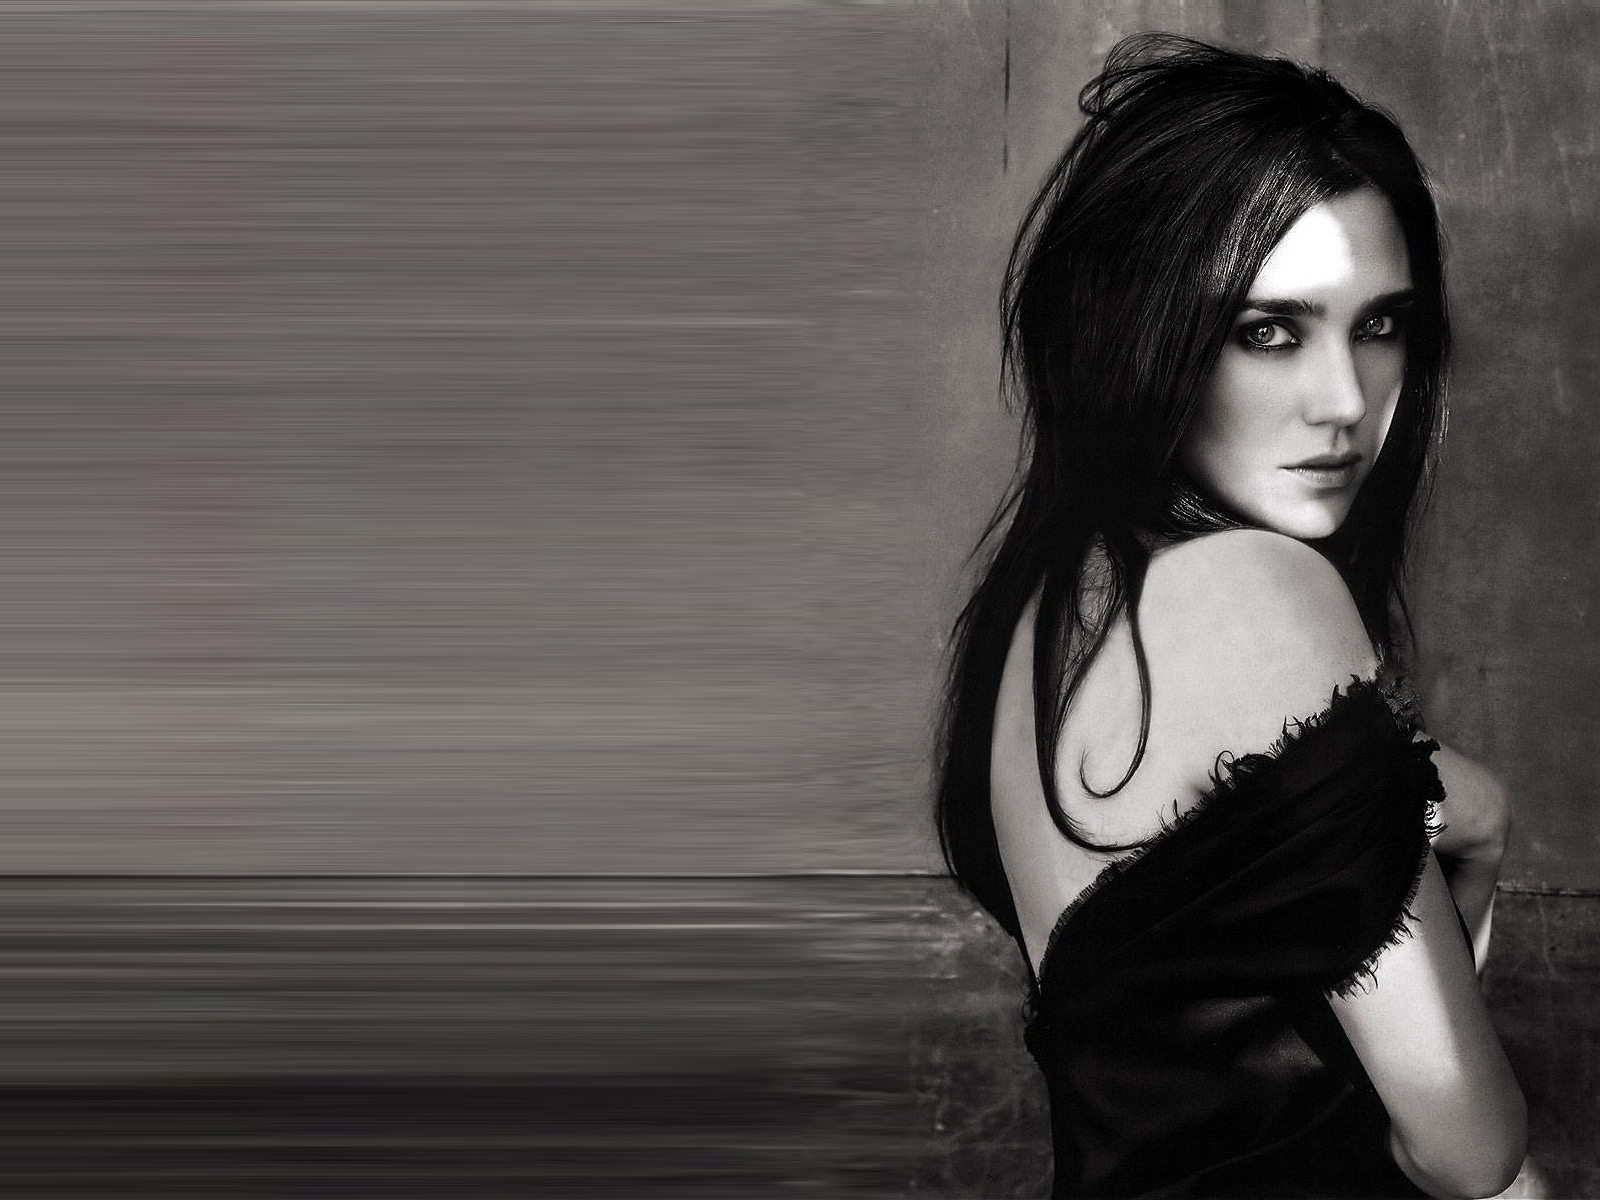 1600x1200 - Jennifer Connelly Wallpapers 10